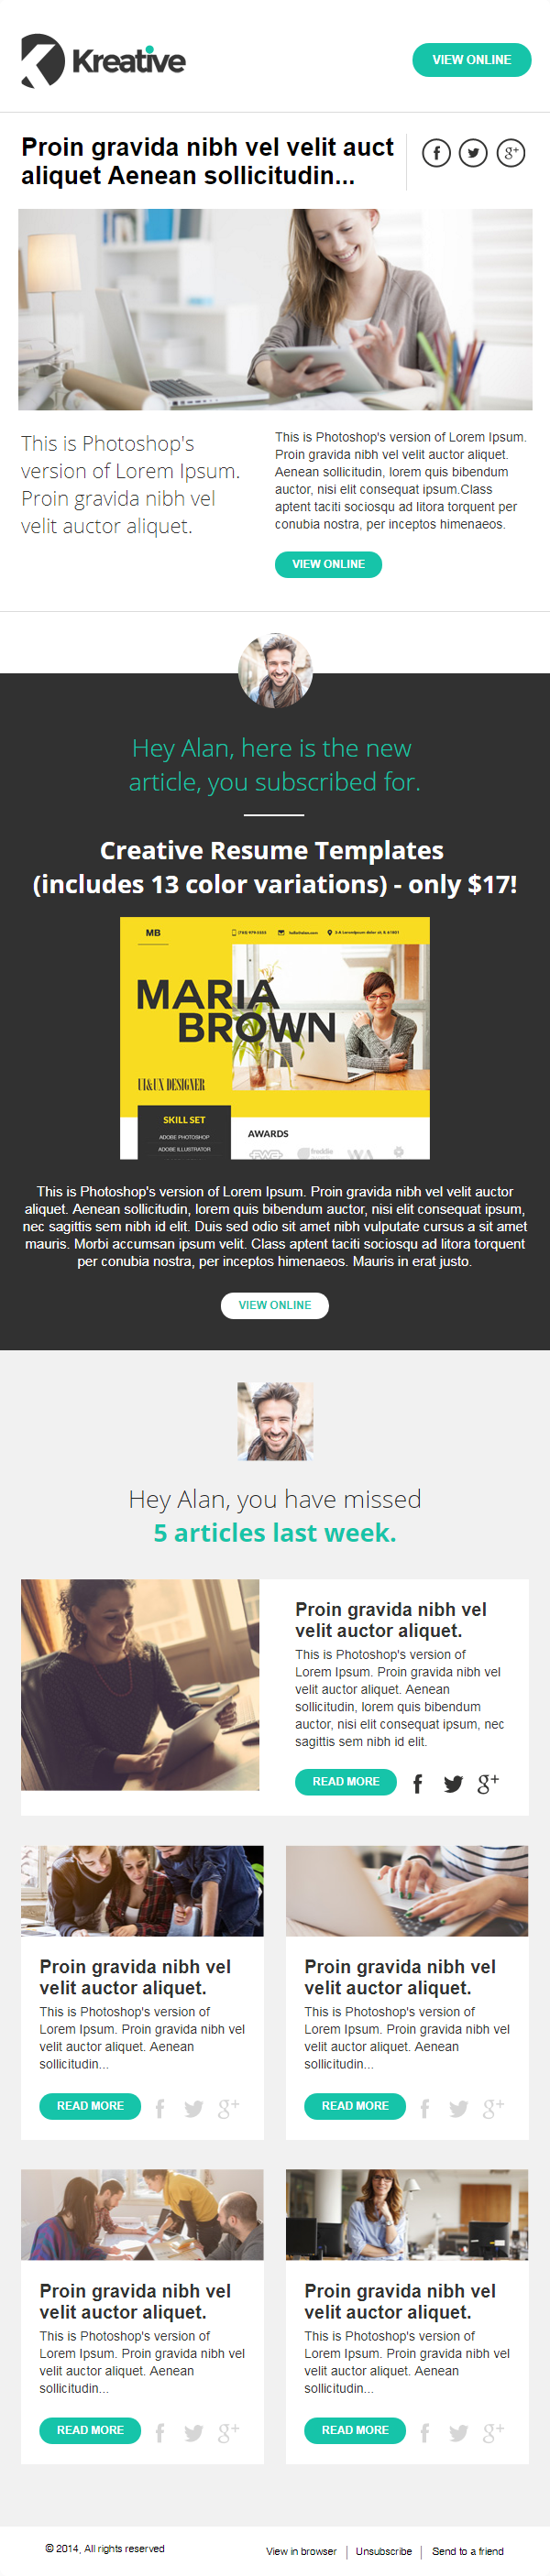 kreative free newsletter template - Free Email Newsletter Templates